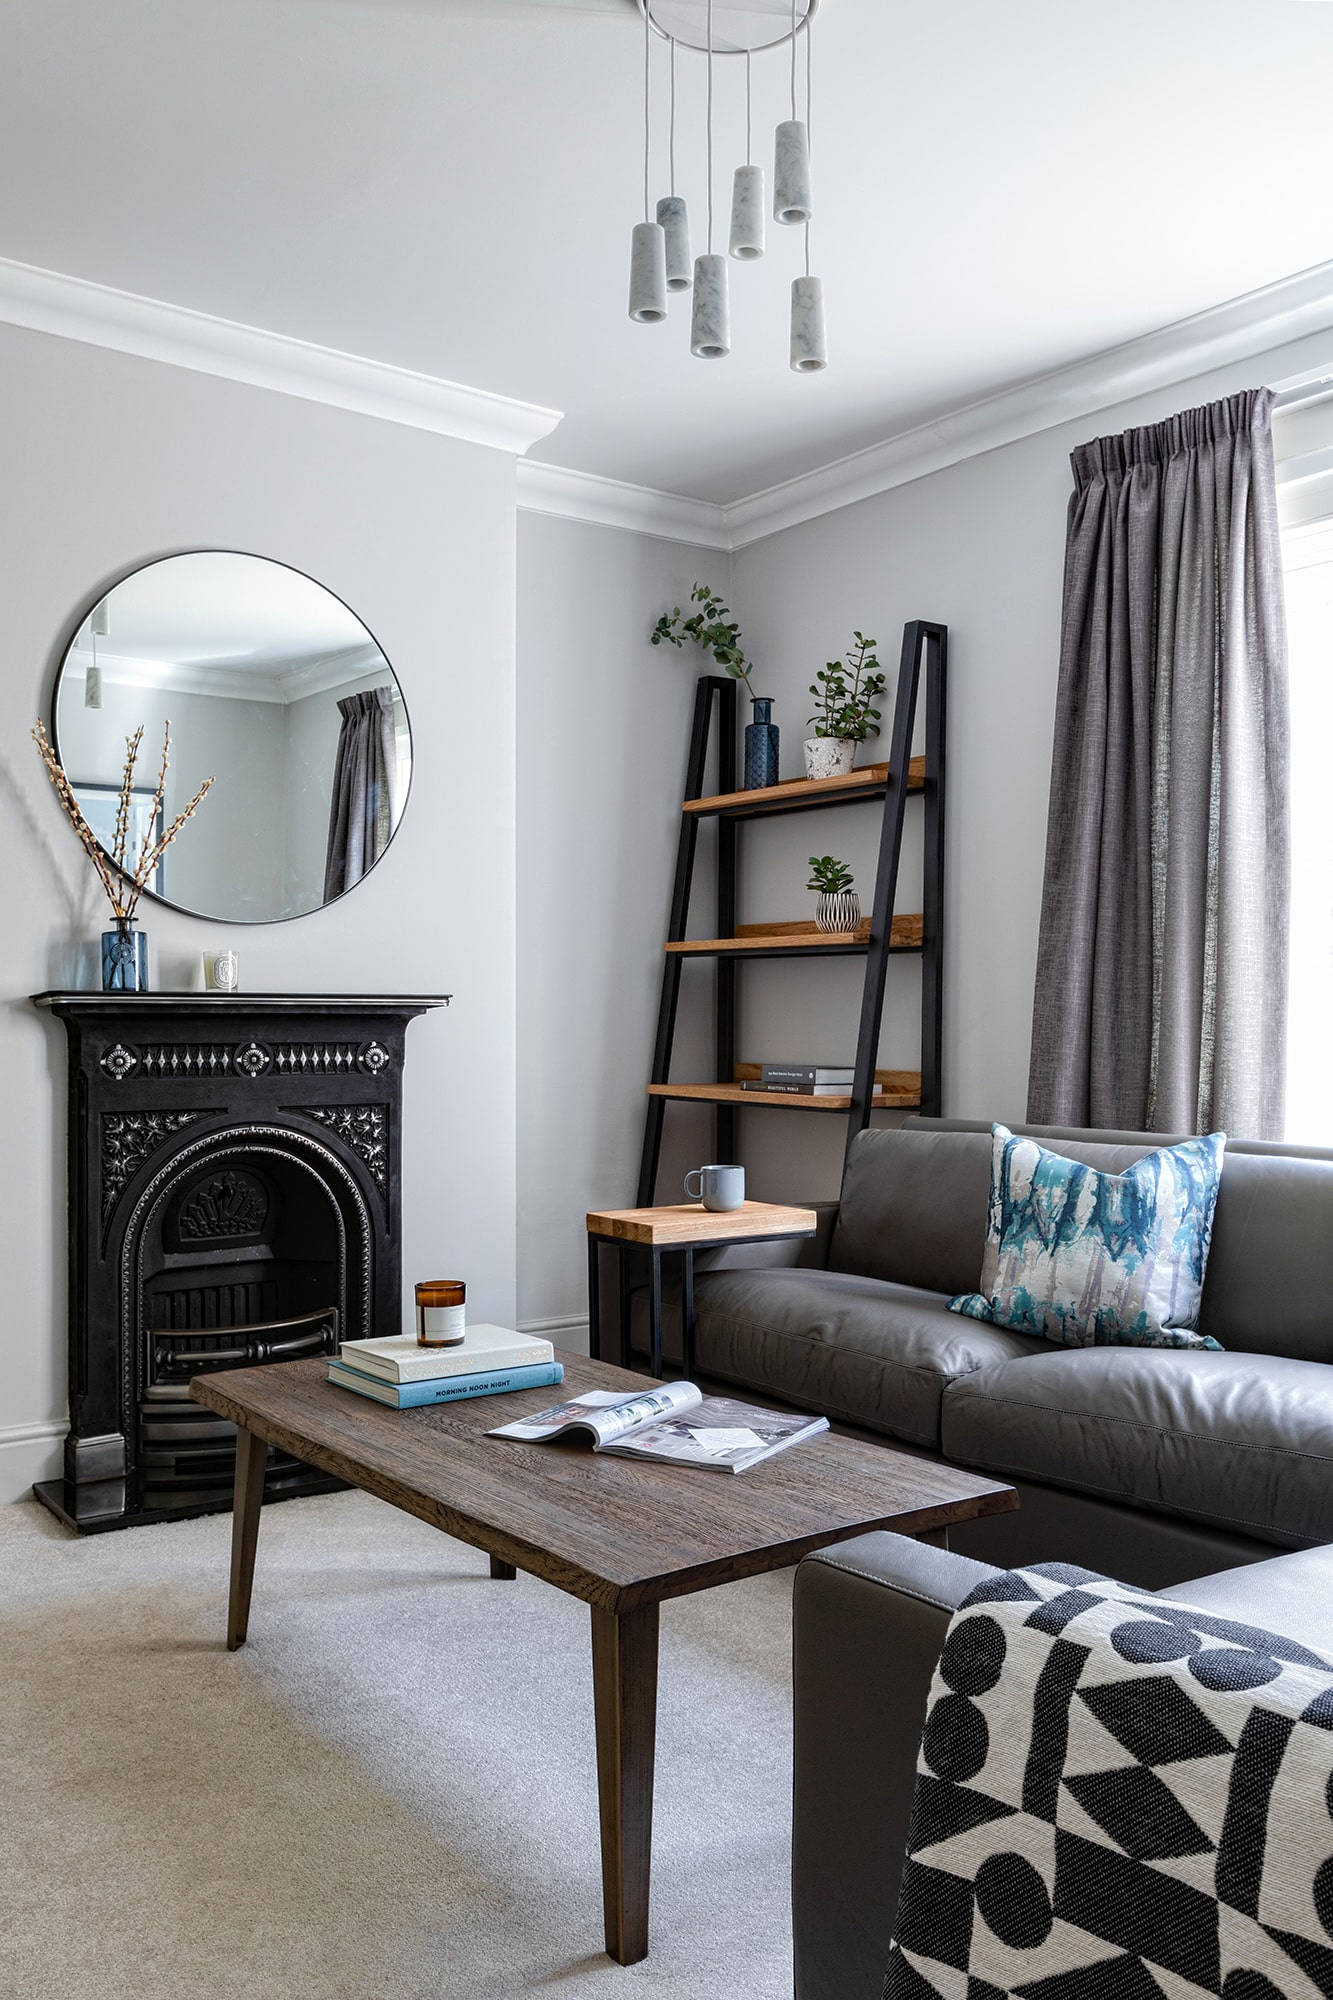 interior shot: living room with grey walls; grey sofa, blue cushion; ladder shelving unit; fireplace and round mirror